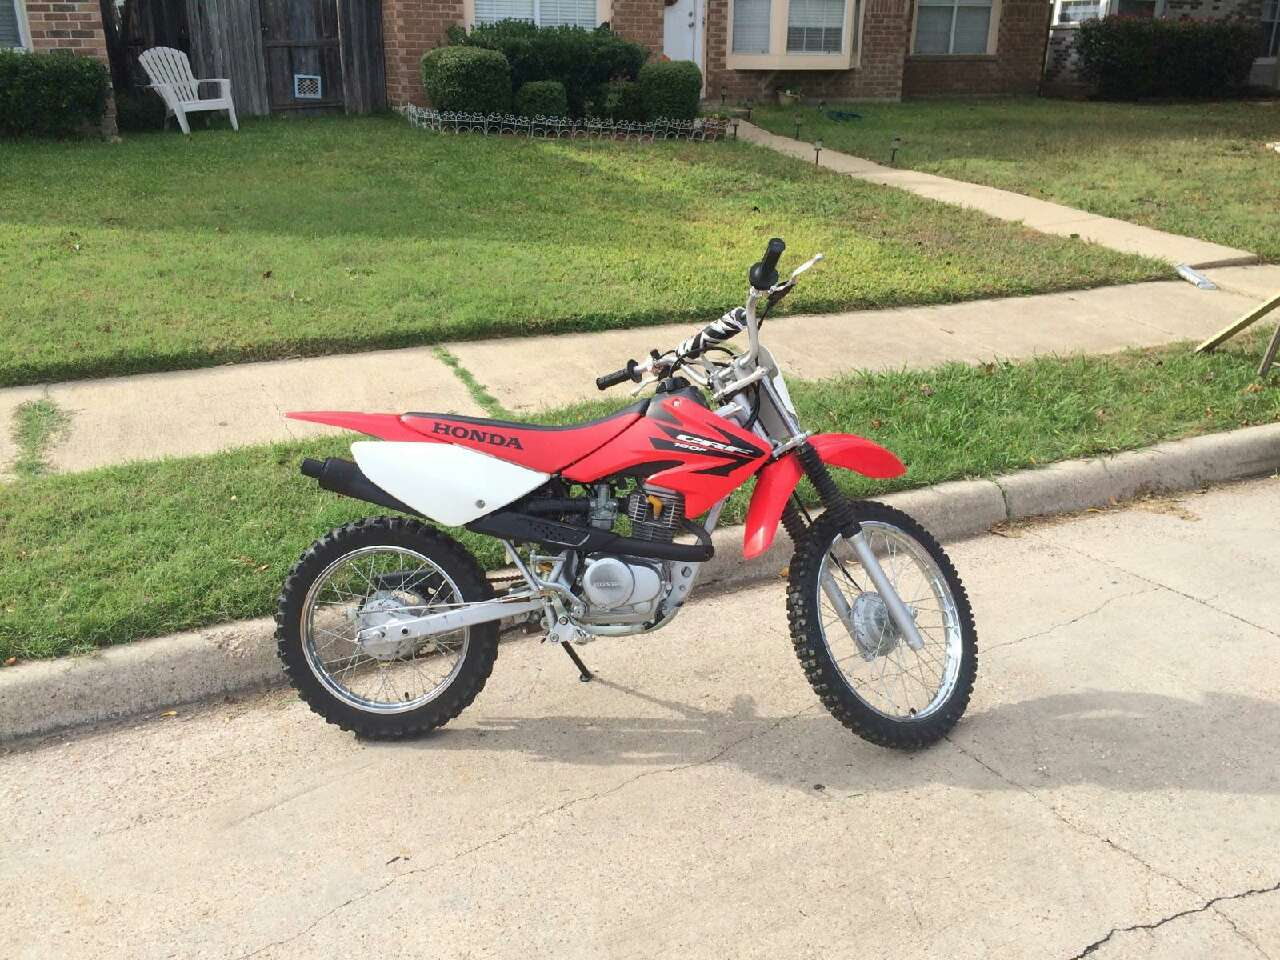 Used Honda Cc Dirt Bike For Sale Near Me